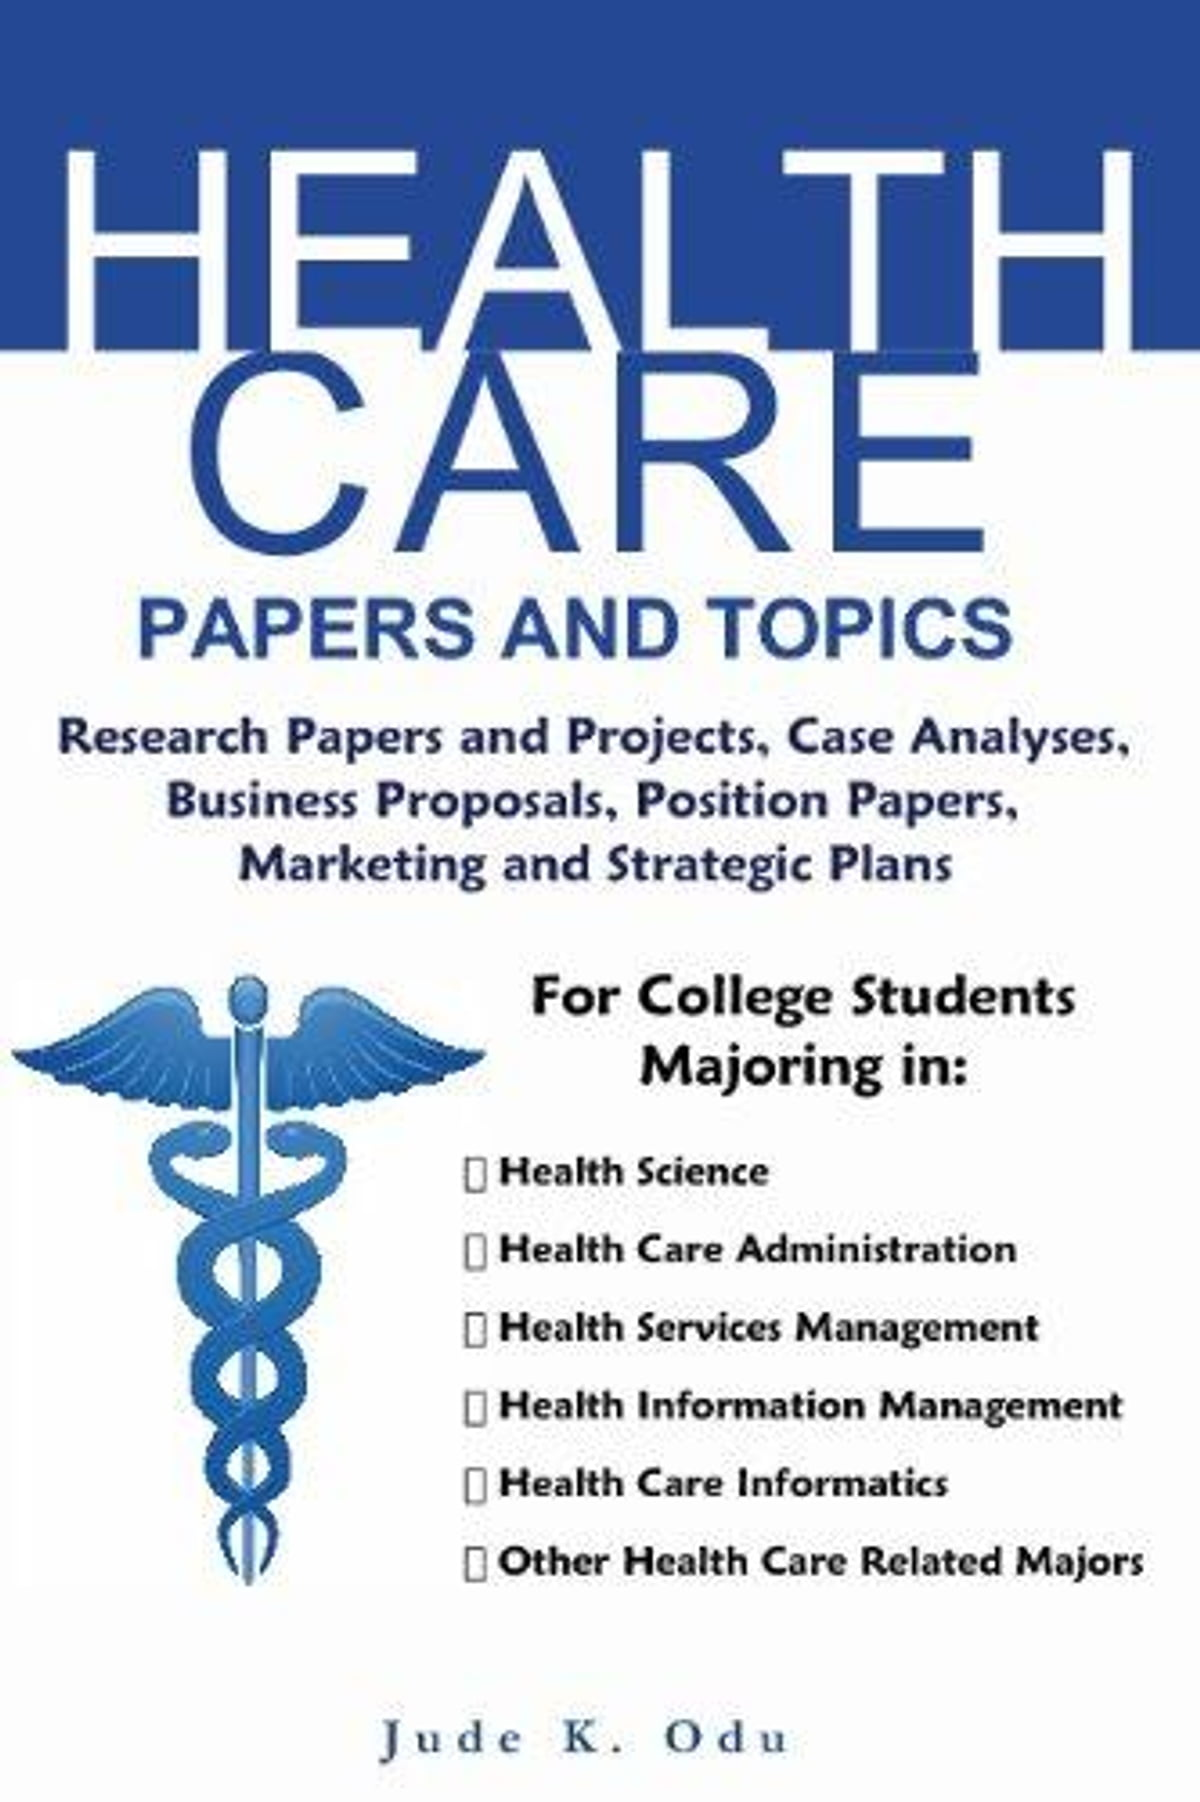 health care papers and topics for college students in health care health care papers and topics for college students in health care related majors ebook by odu jude k 9781936085101 kobo